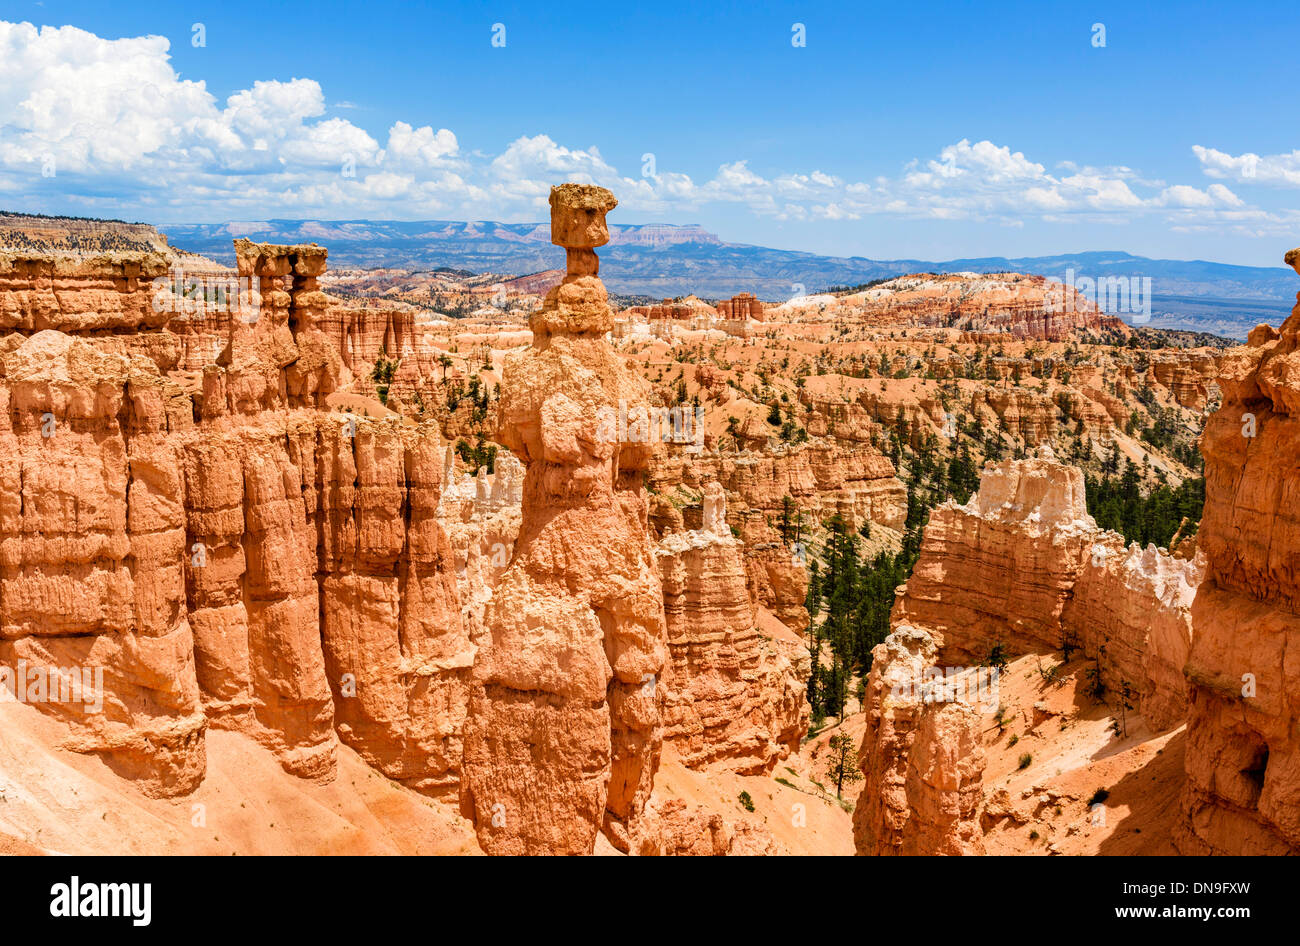 Thors Hammer monolith on the Navajo Loop Trail, Sunset Point, Bryce Amphitheater, Bryce Canyon National Park, Utah, USA - Stock Image